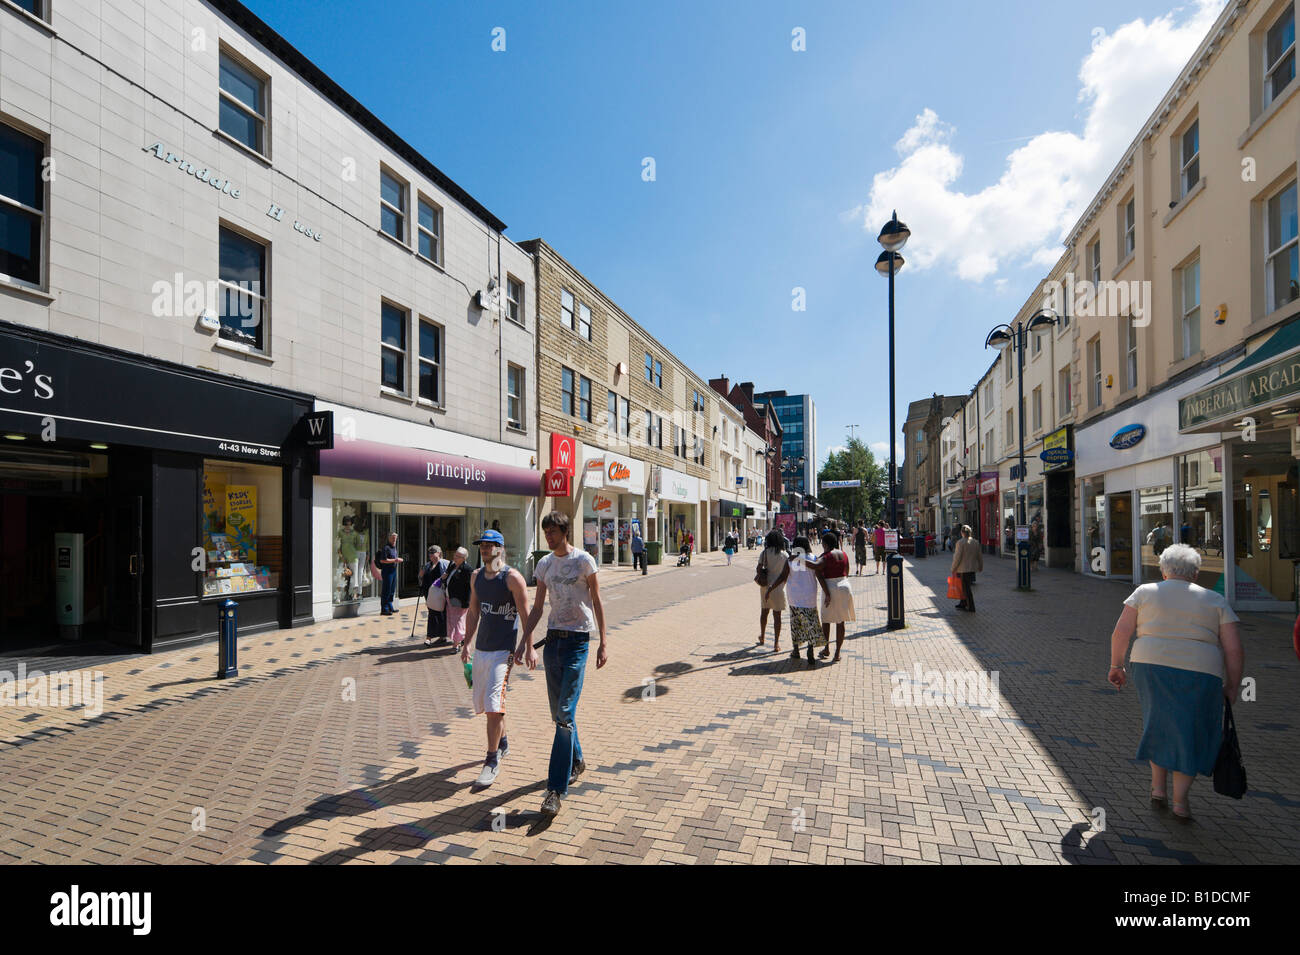 Pedestrian shopping area on New Street, Huddersfield, West Yorkshire, England, United Kingdom - Stock Image